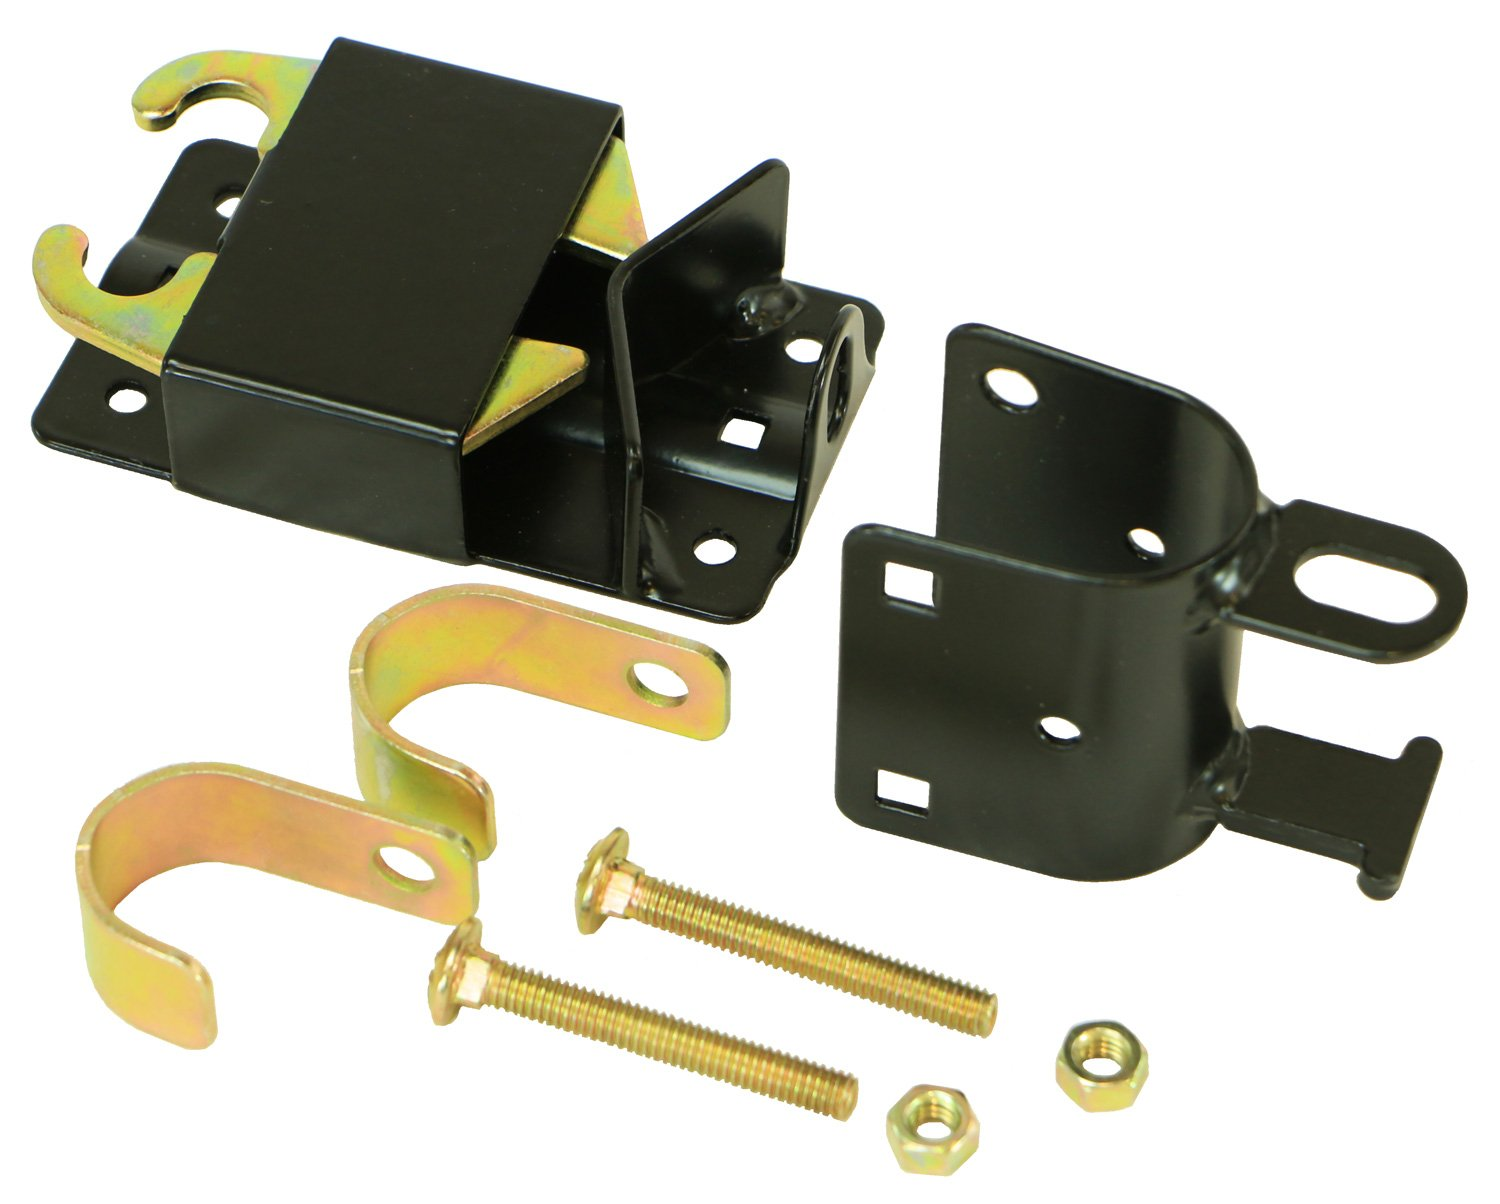 RanchEx 102551 Lockable Gate Latch - Outside Diameter for Round Tube Gates 2 Way 1-1/4'' to 1-1/2''